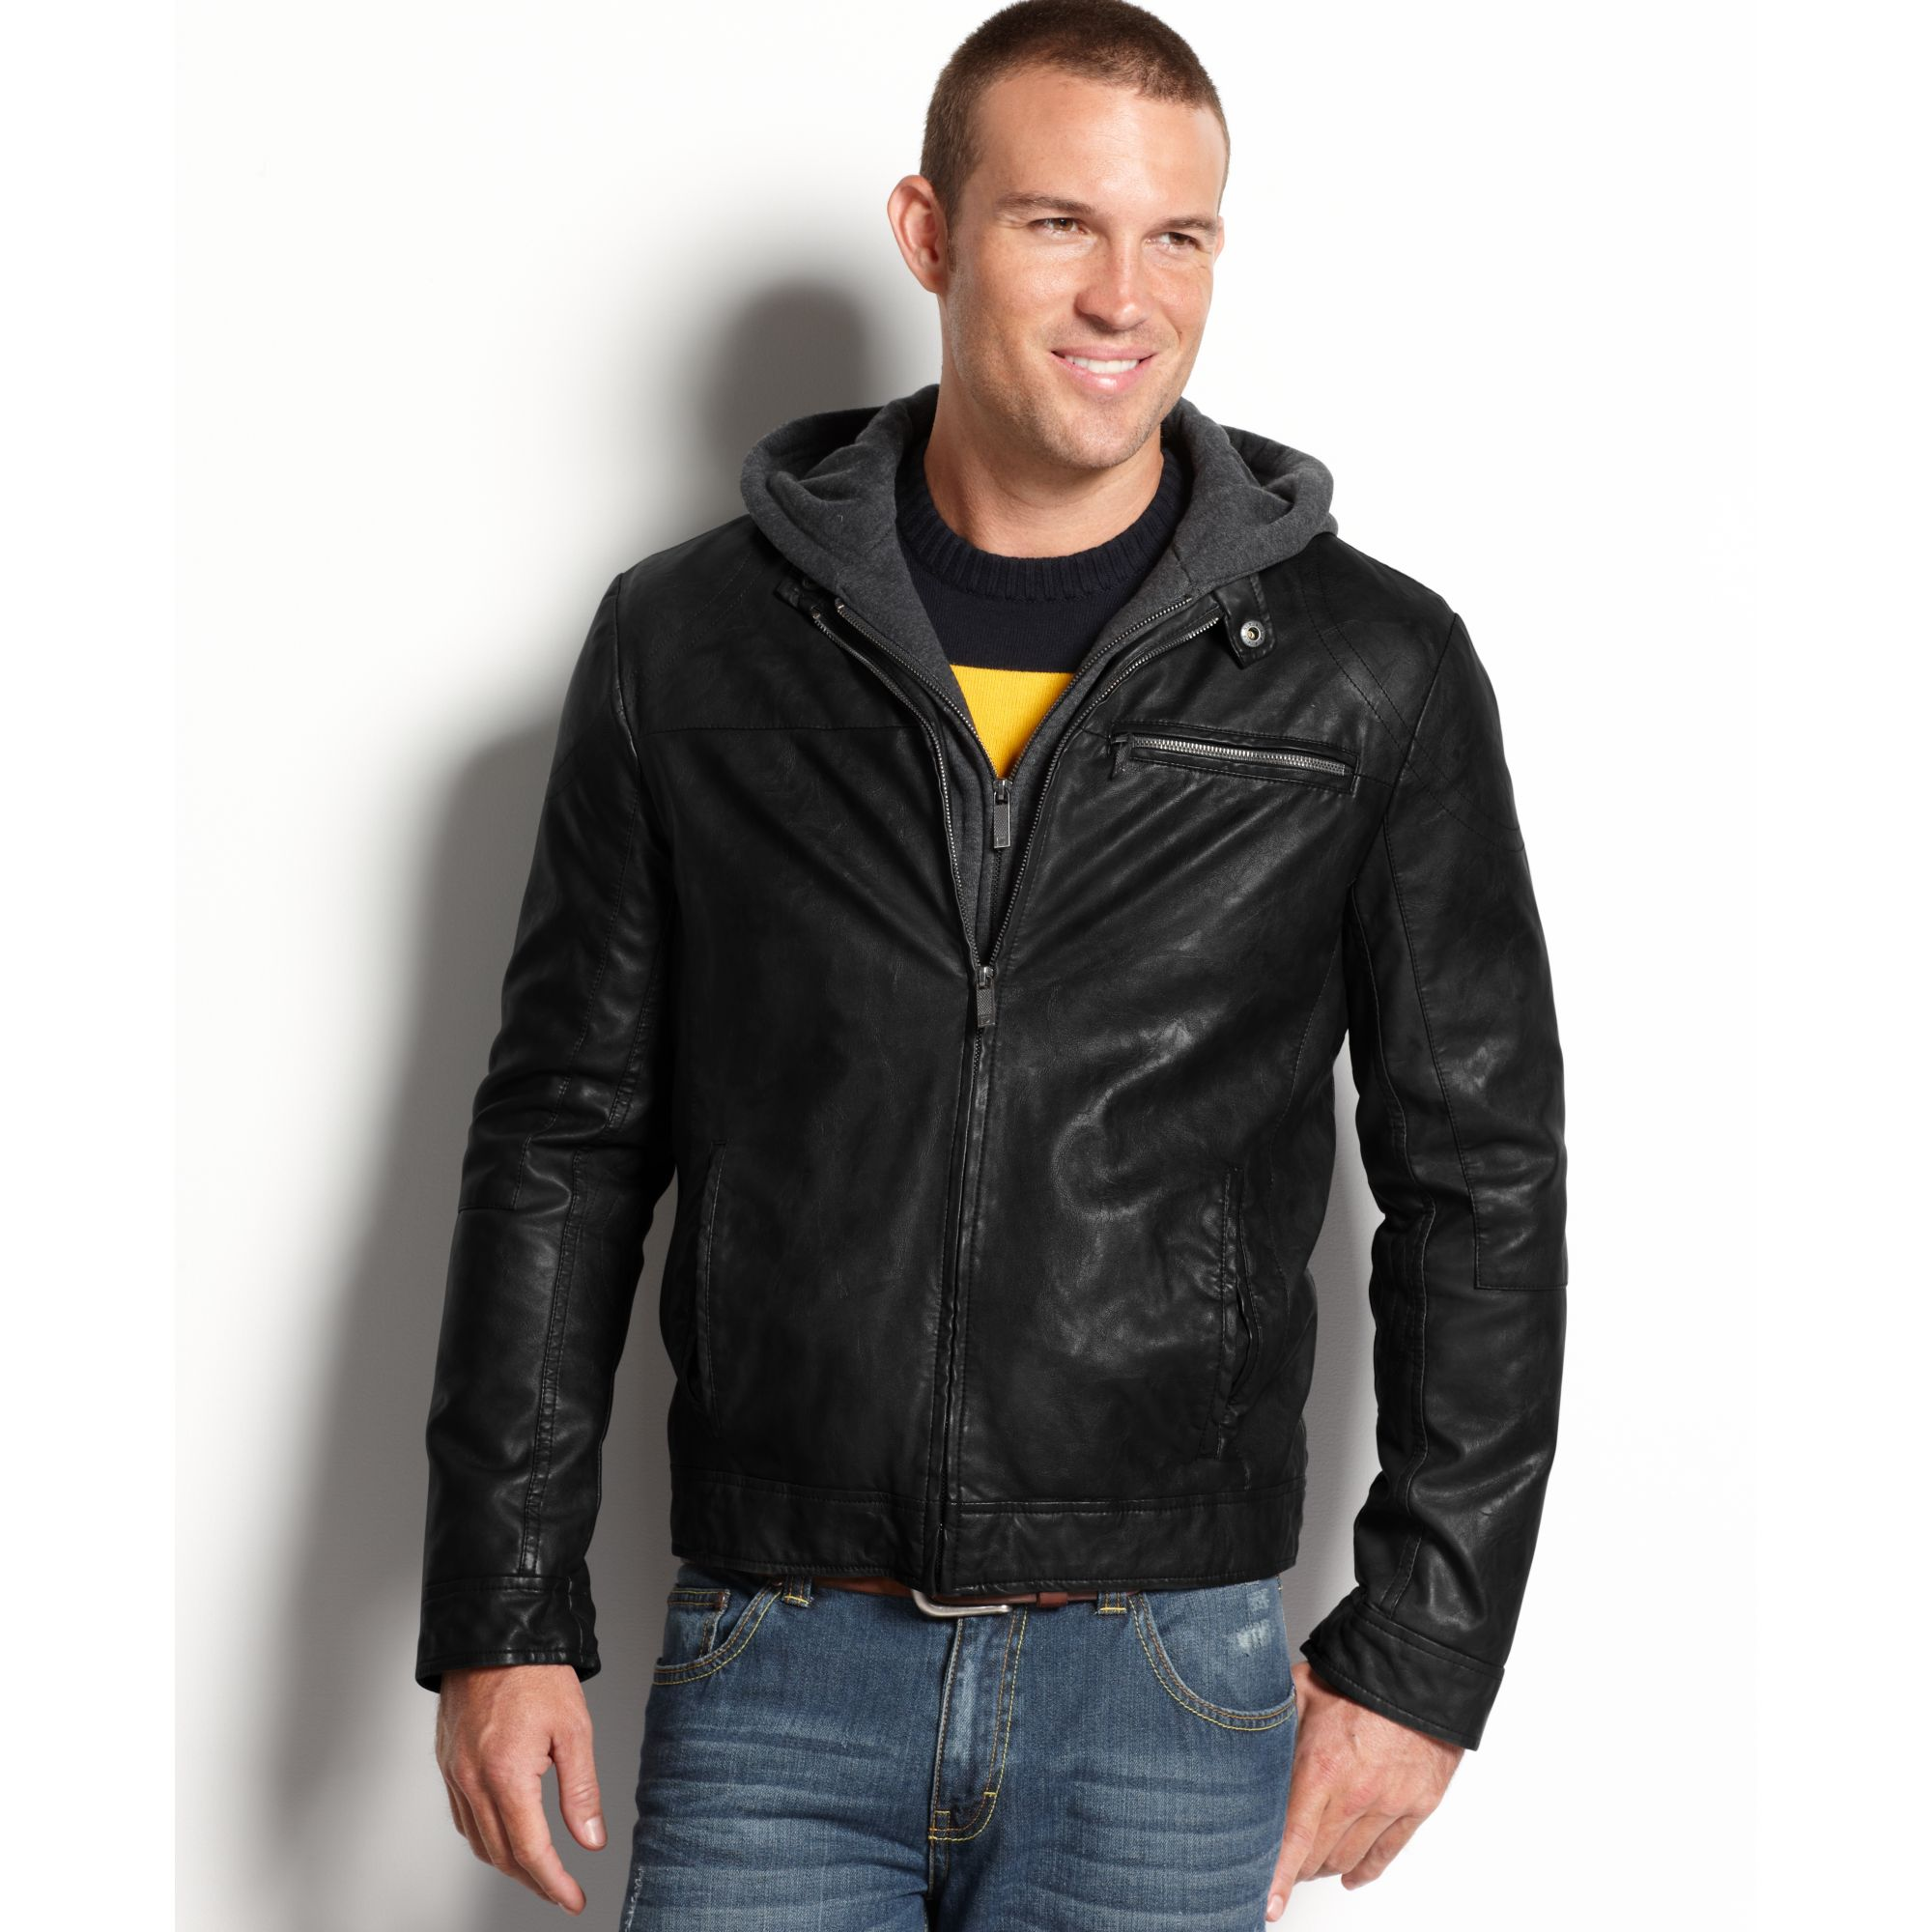 Find great deals on Mens Hooded Coats & Jackets at Kohl's today! Sponsored Links Outside companies pay to advertise via these links when specific phrases and words are searched.